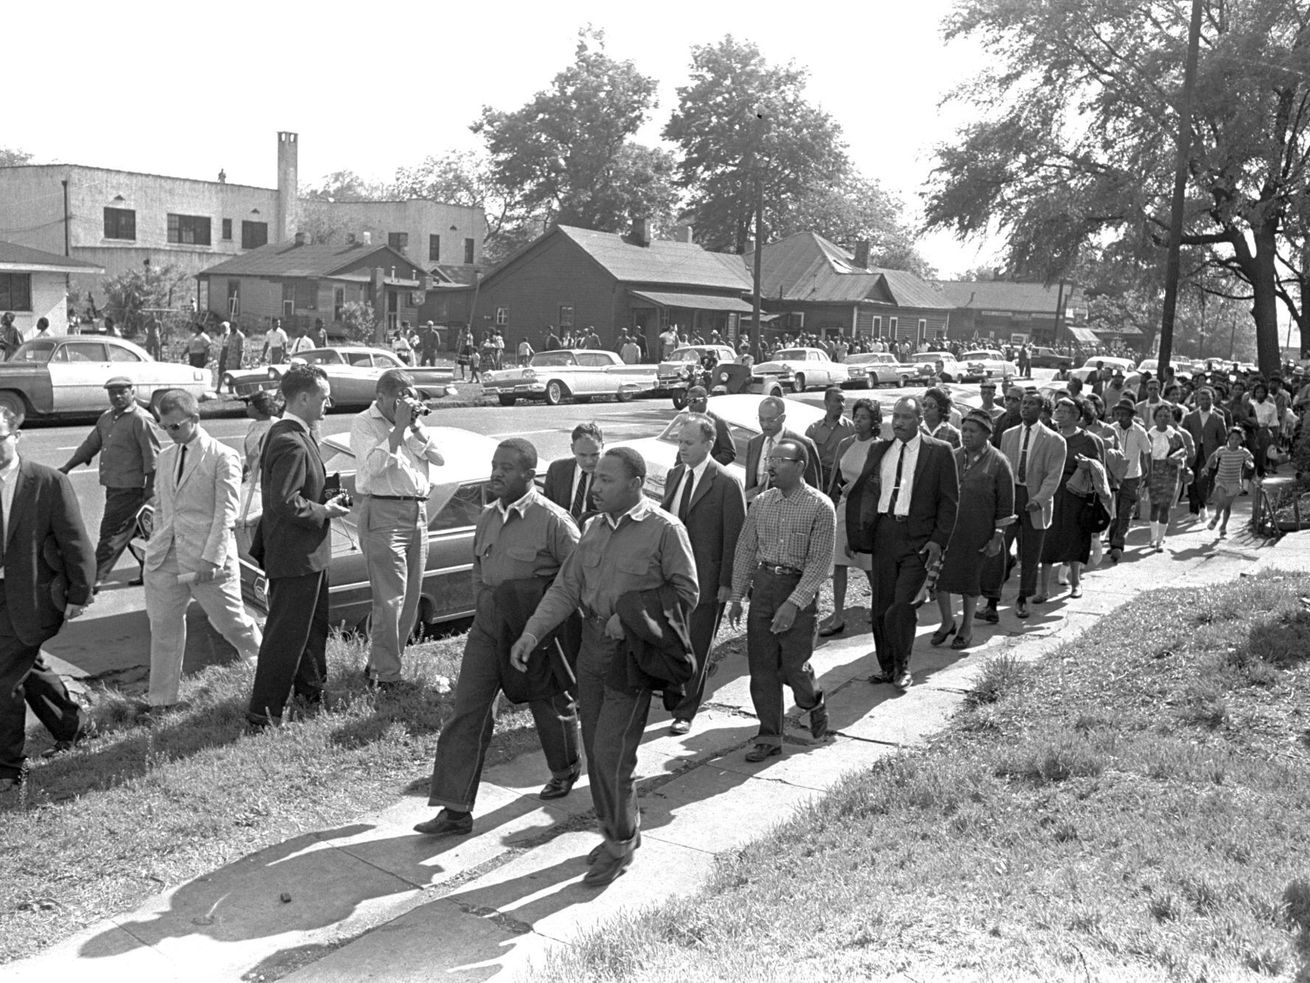 "Rev. Ralph Abernathy, left, and Rev. Martin Luther King Jr. lead a column of demonstrators as they attempt to march on Birmingham, Ala., city hall April 12, 1963. Police intercepted the group short of their goal. Rev. Jonathan McPherson, shown in a coat and tie two people behind King, in 2021 is urging protesters against racial injustice to ""keep on keeping on."""